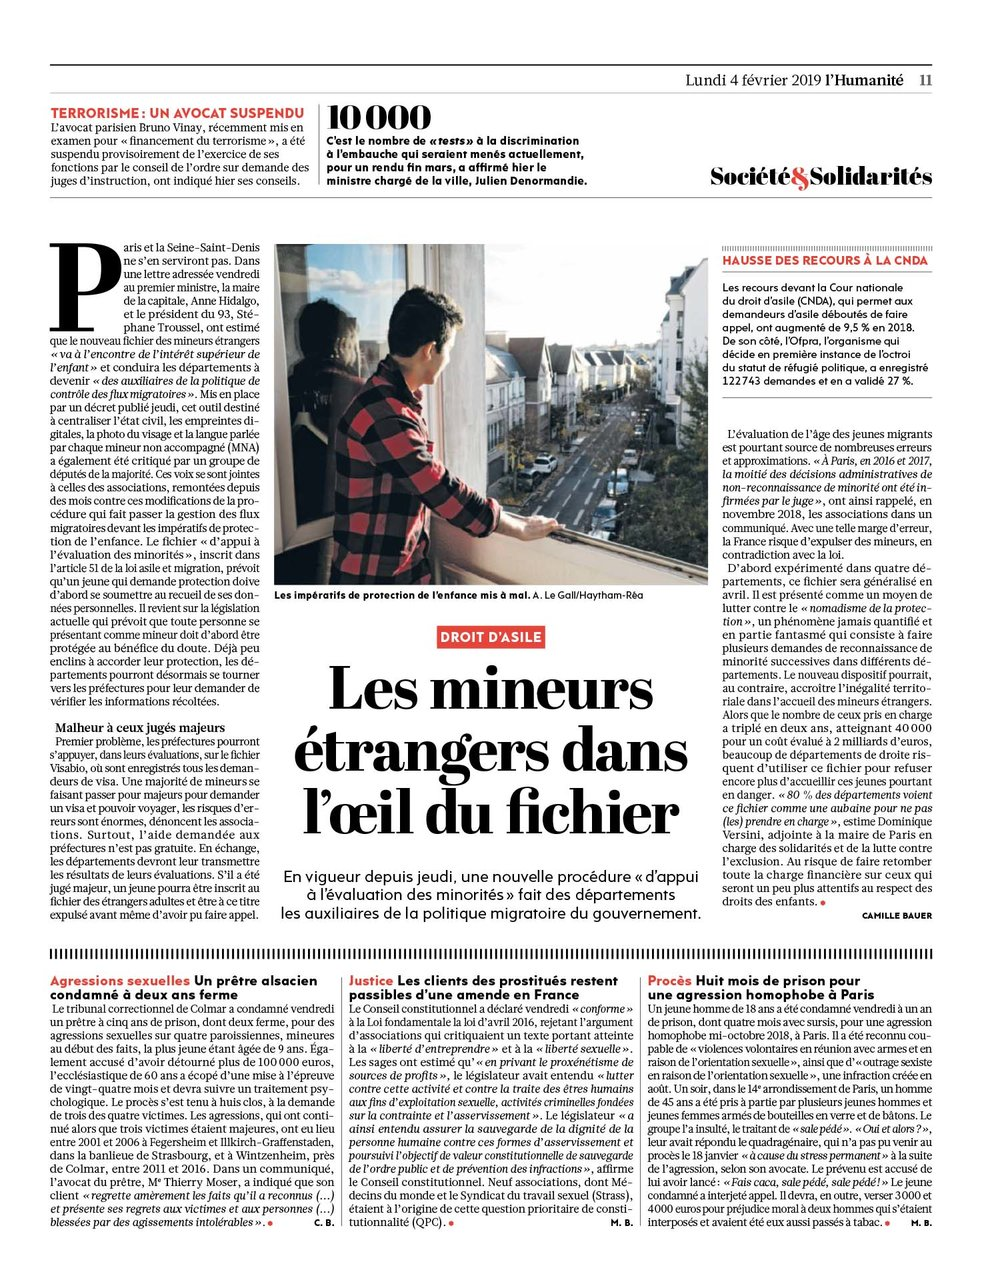 L'Humanité February 04, 2019,